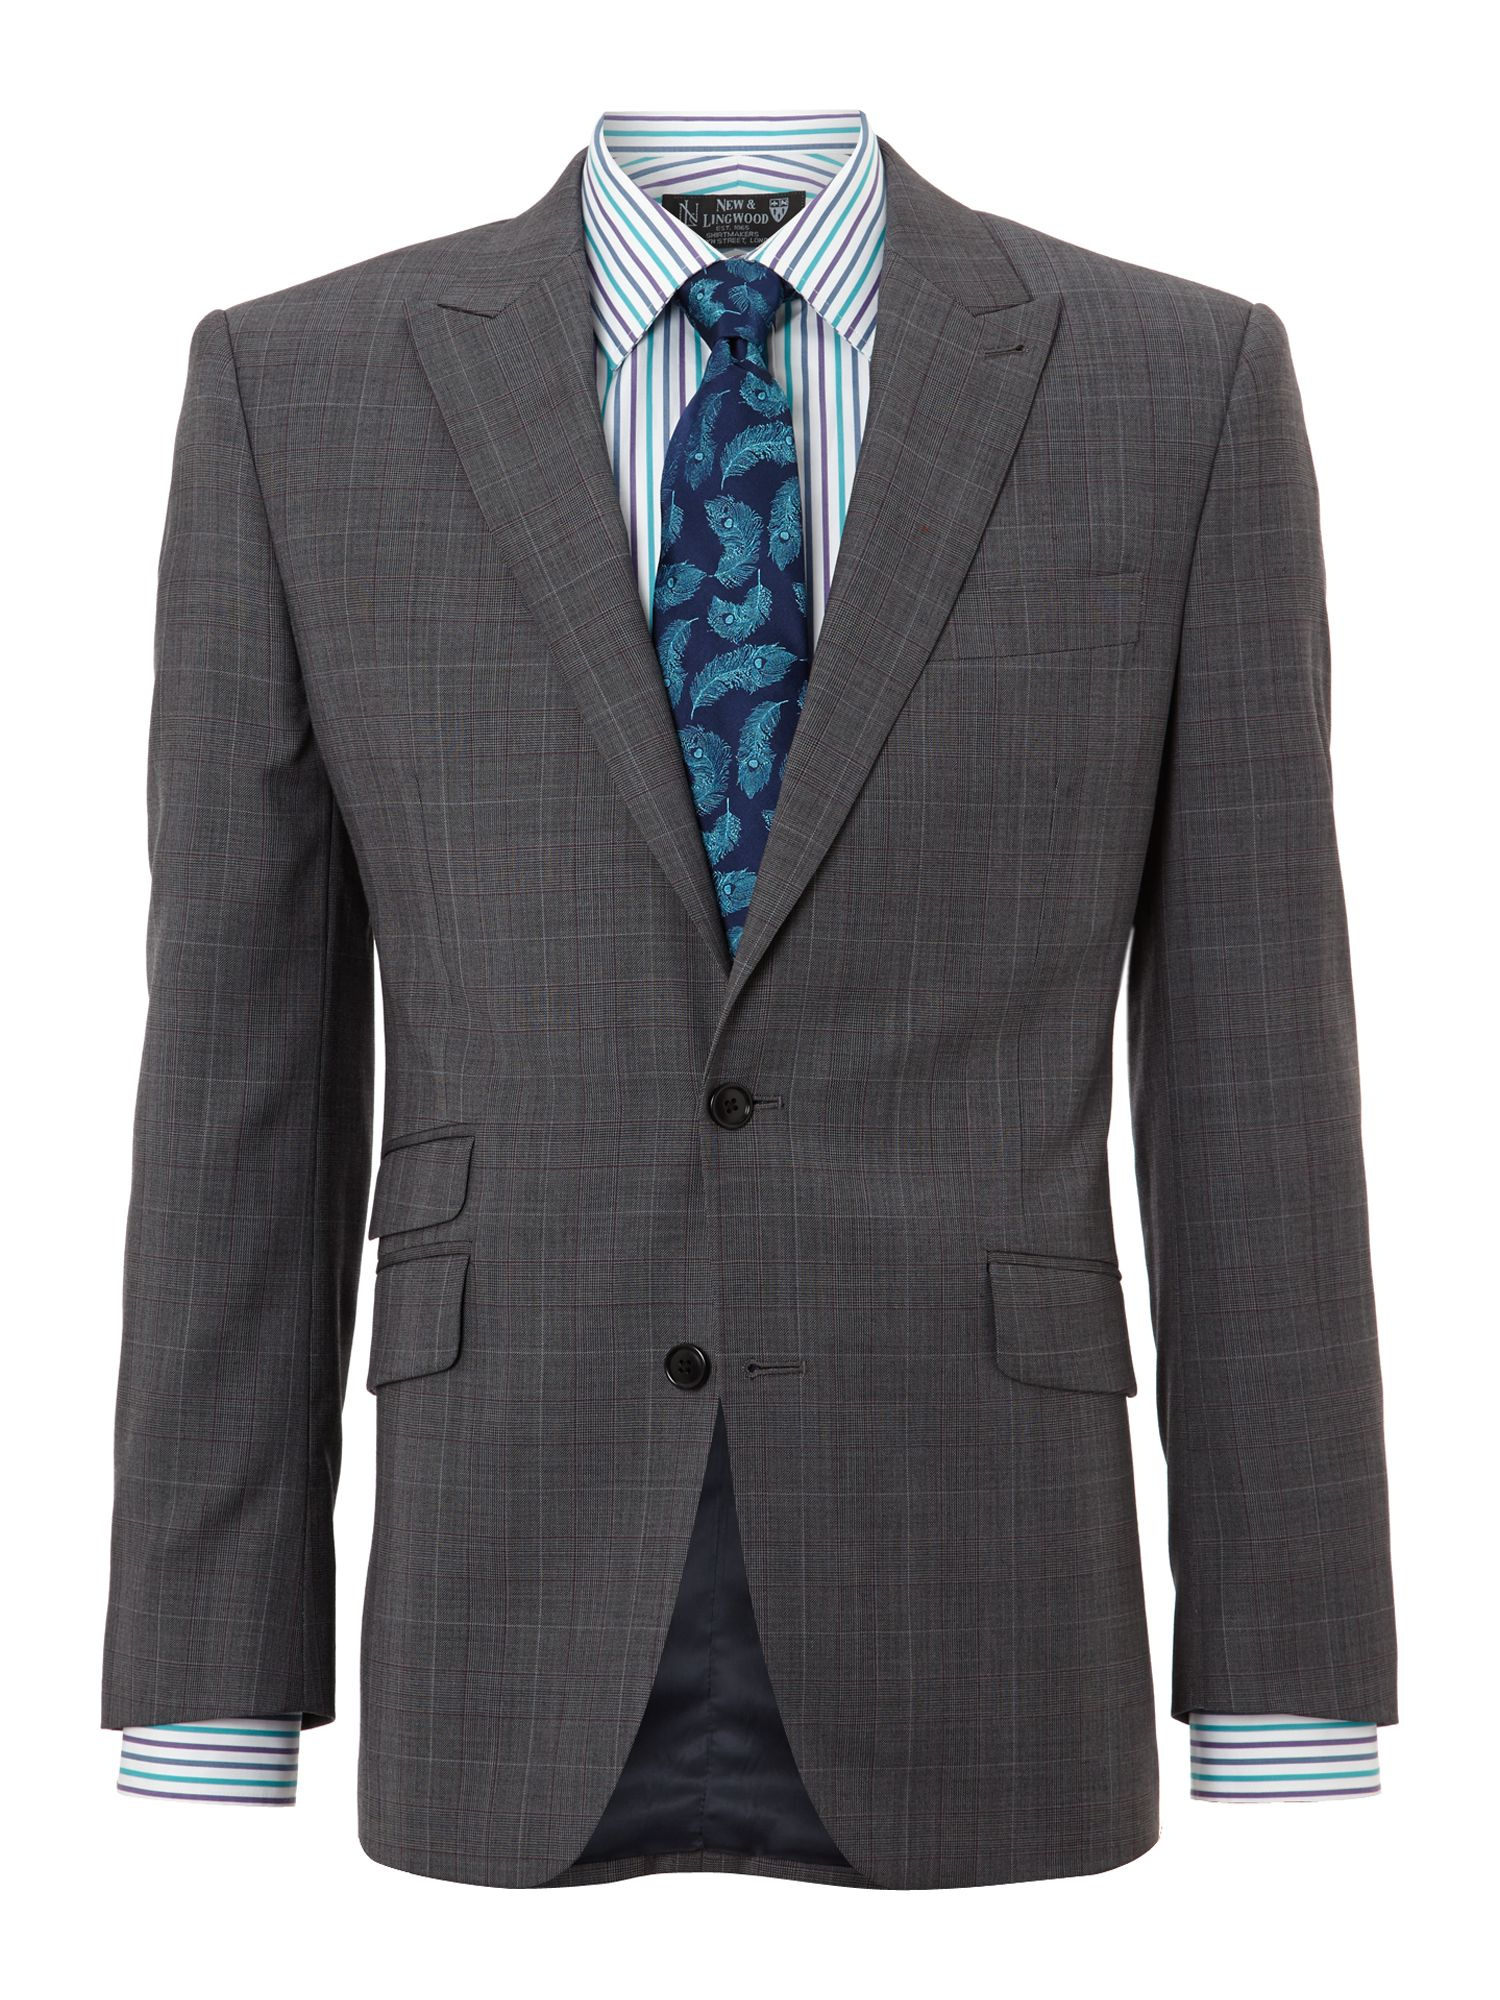 Swindale peak Prince of Wales suit